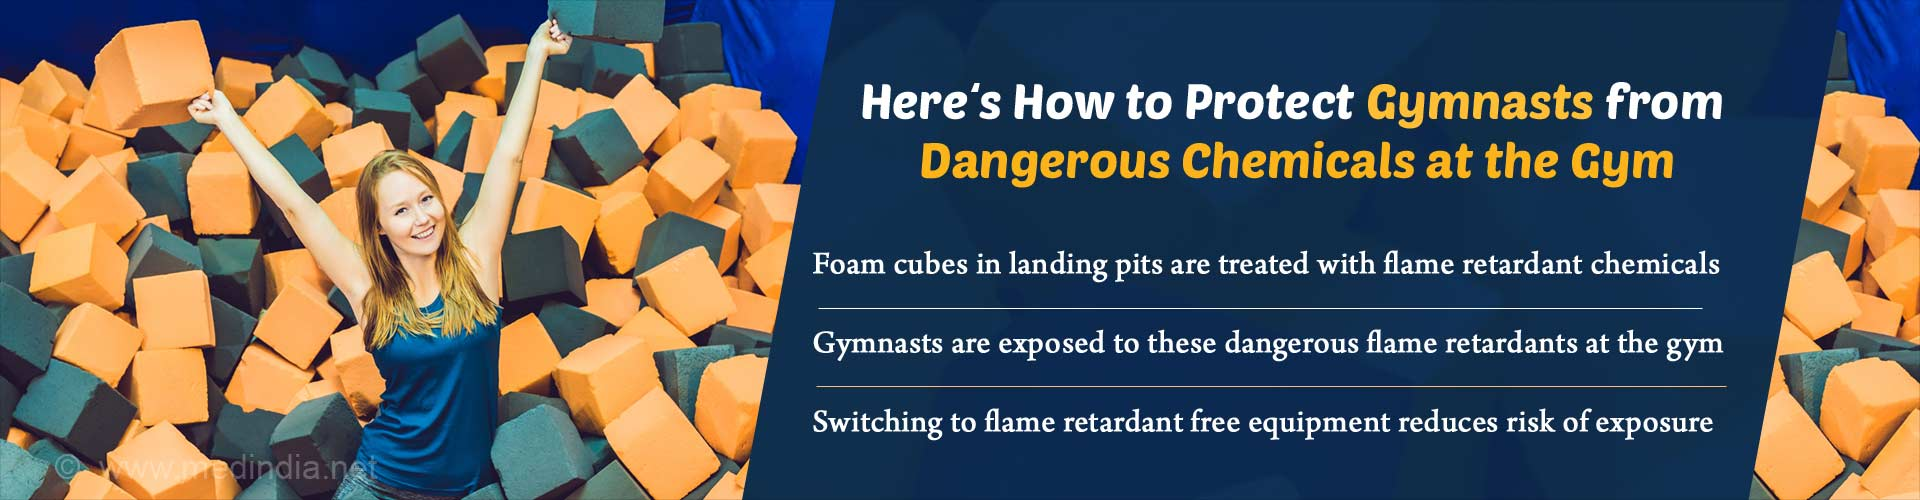 How To Protect Gymnasts from Dangerous Chemicals at the Gym